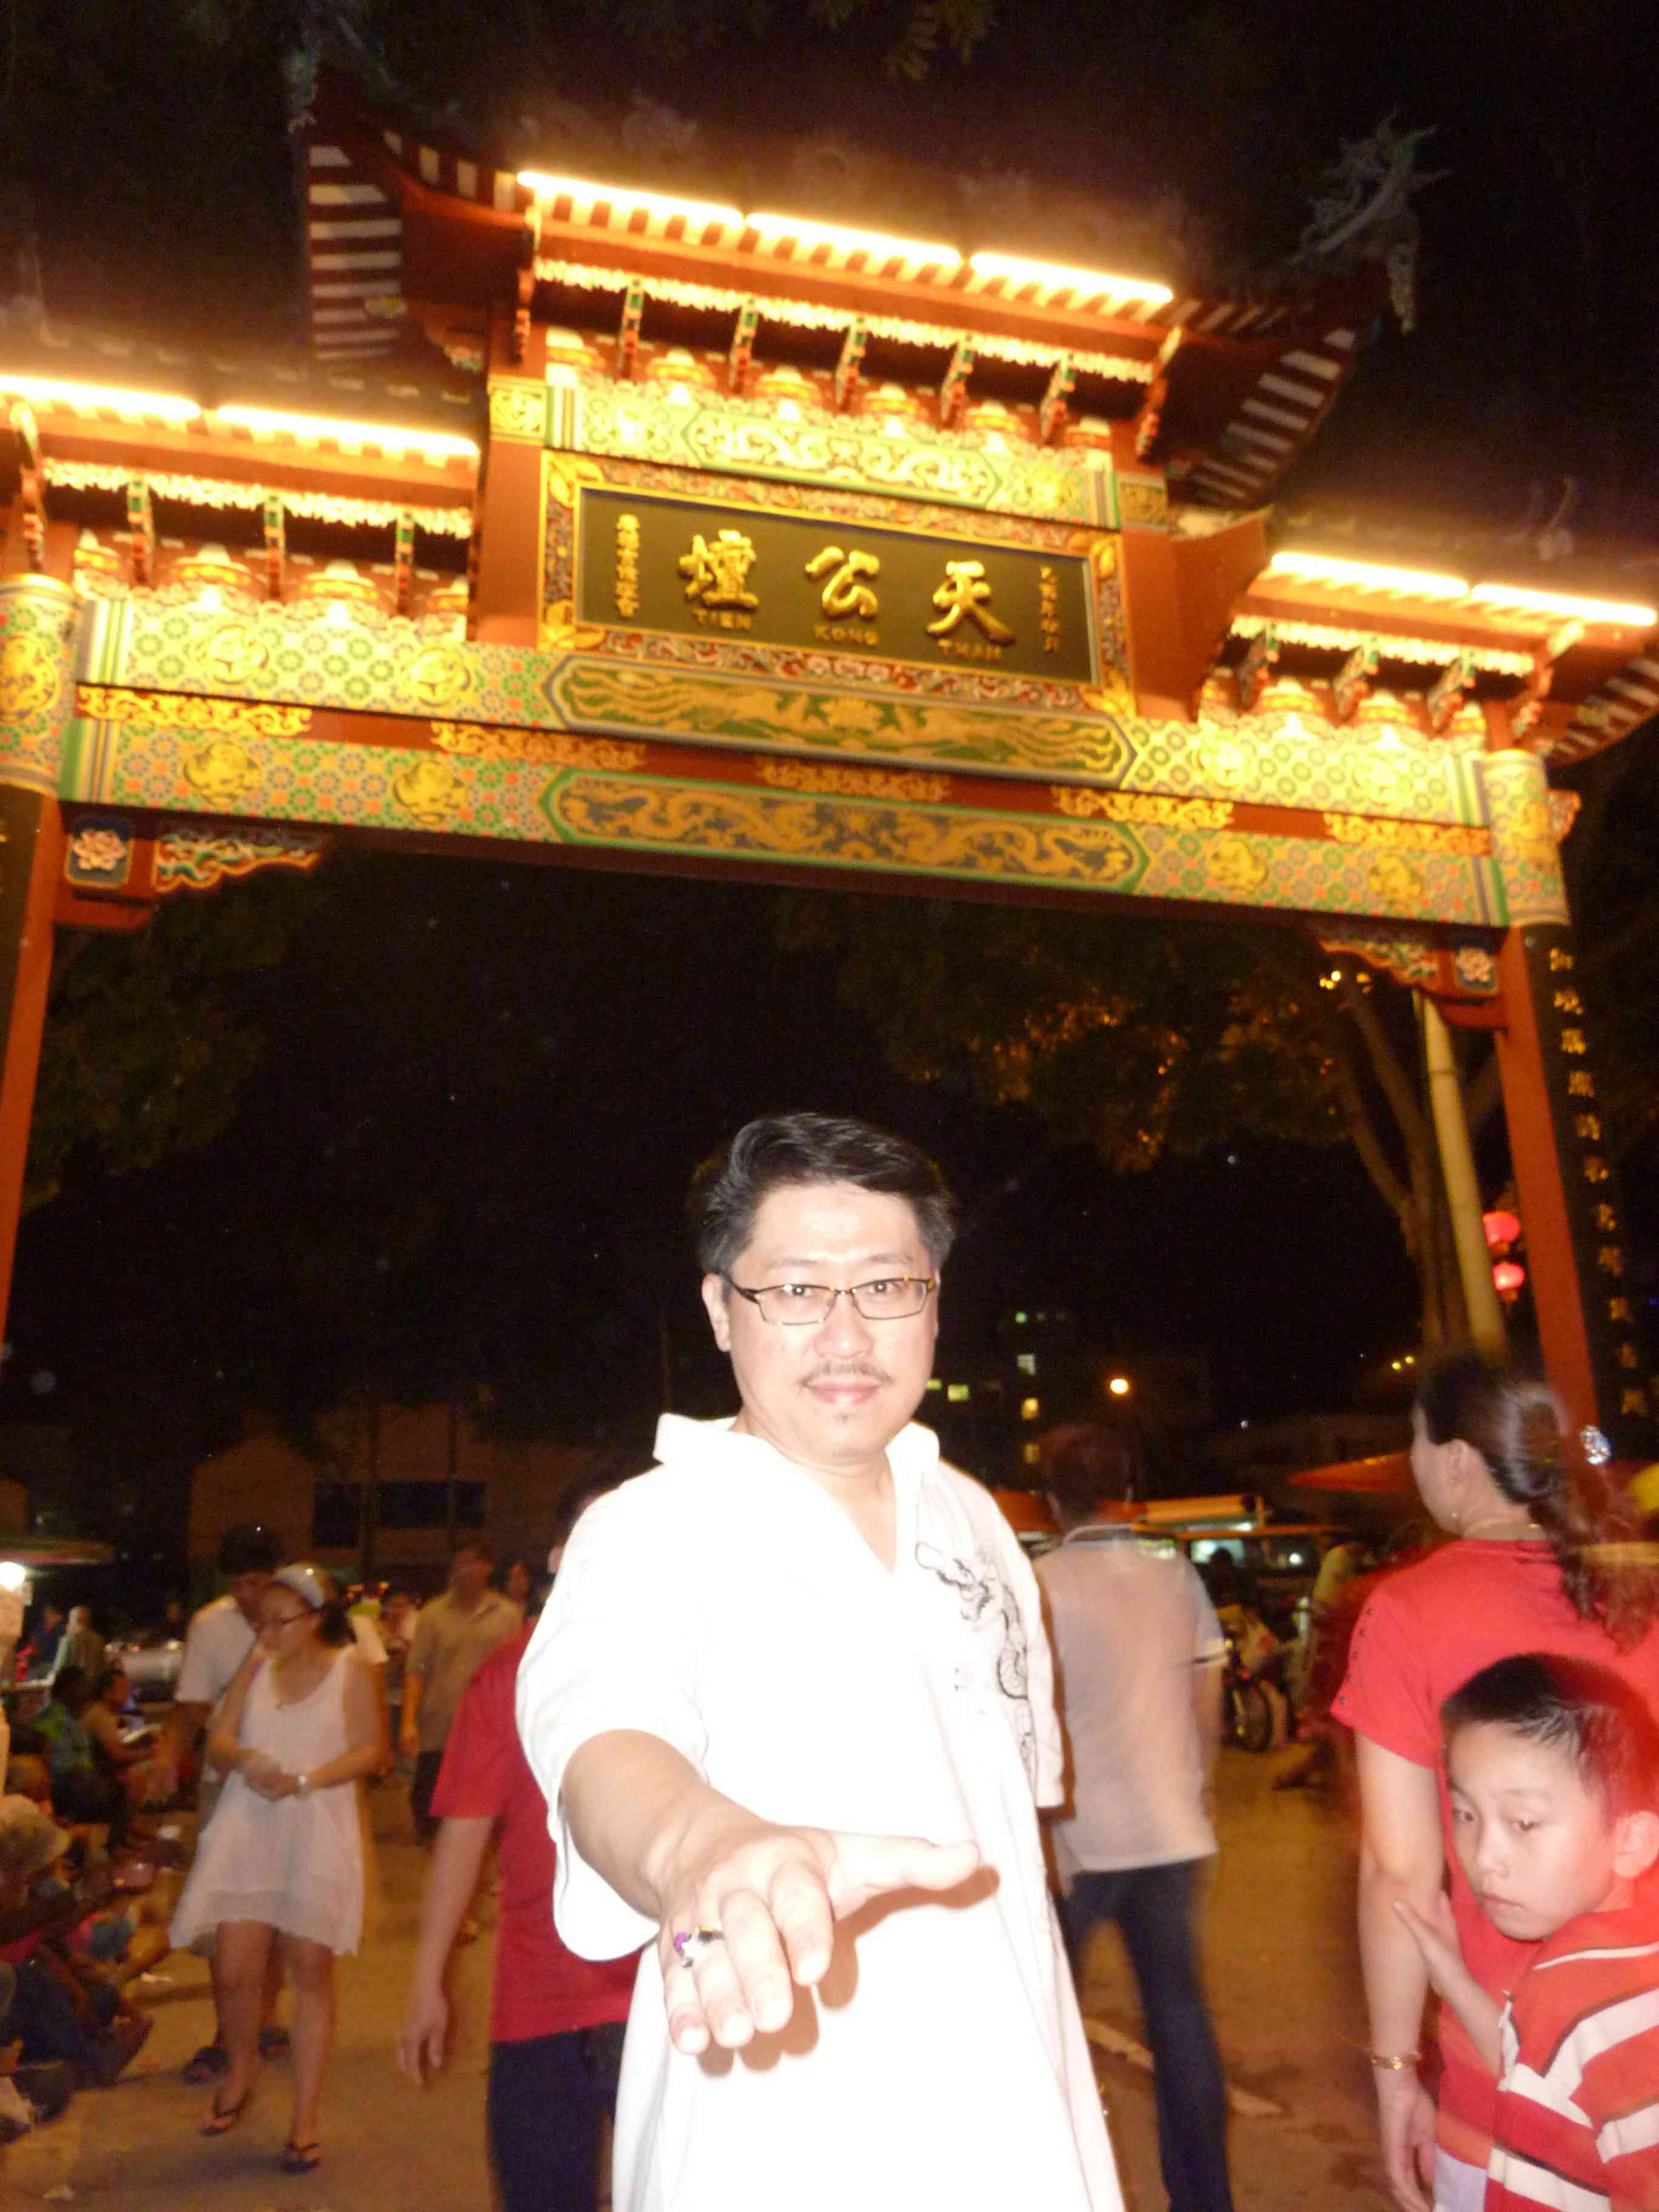 Master Soon Kicked Off His Year 2011, at 1am, 10 Feb 2011 at Penang Hill....孙老师催动其2011年全年活动于升旗山《天公坛》